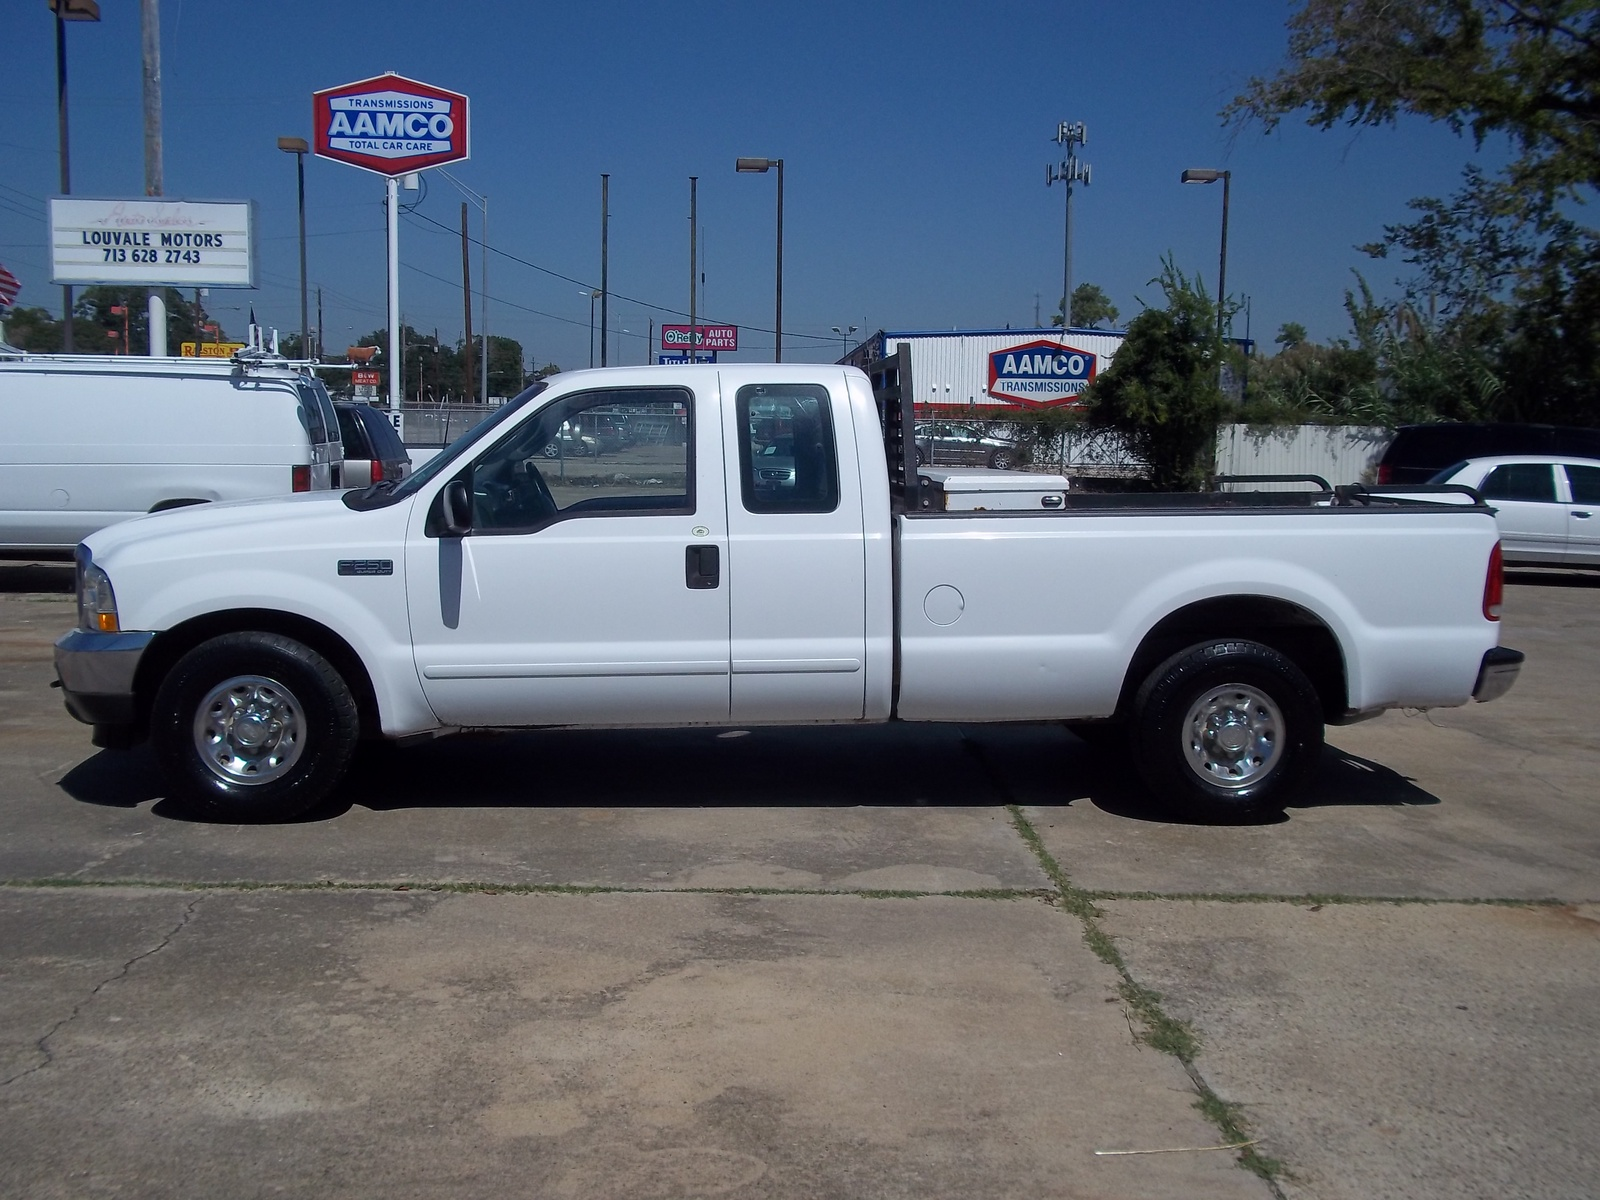 Used Ford F-250 Super Duty For Sale Houston, TX Page 2 - CarGurus